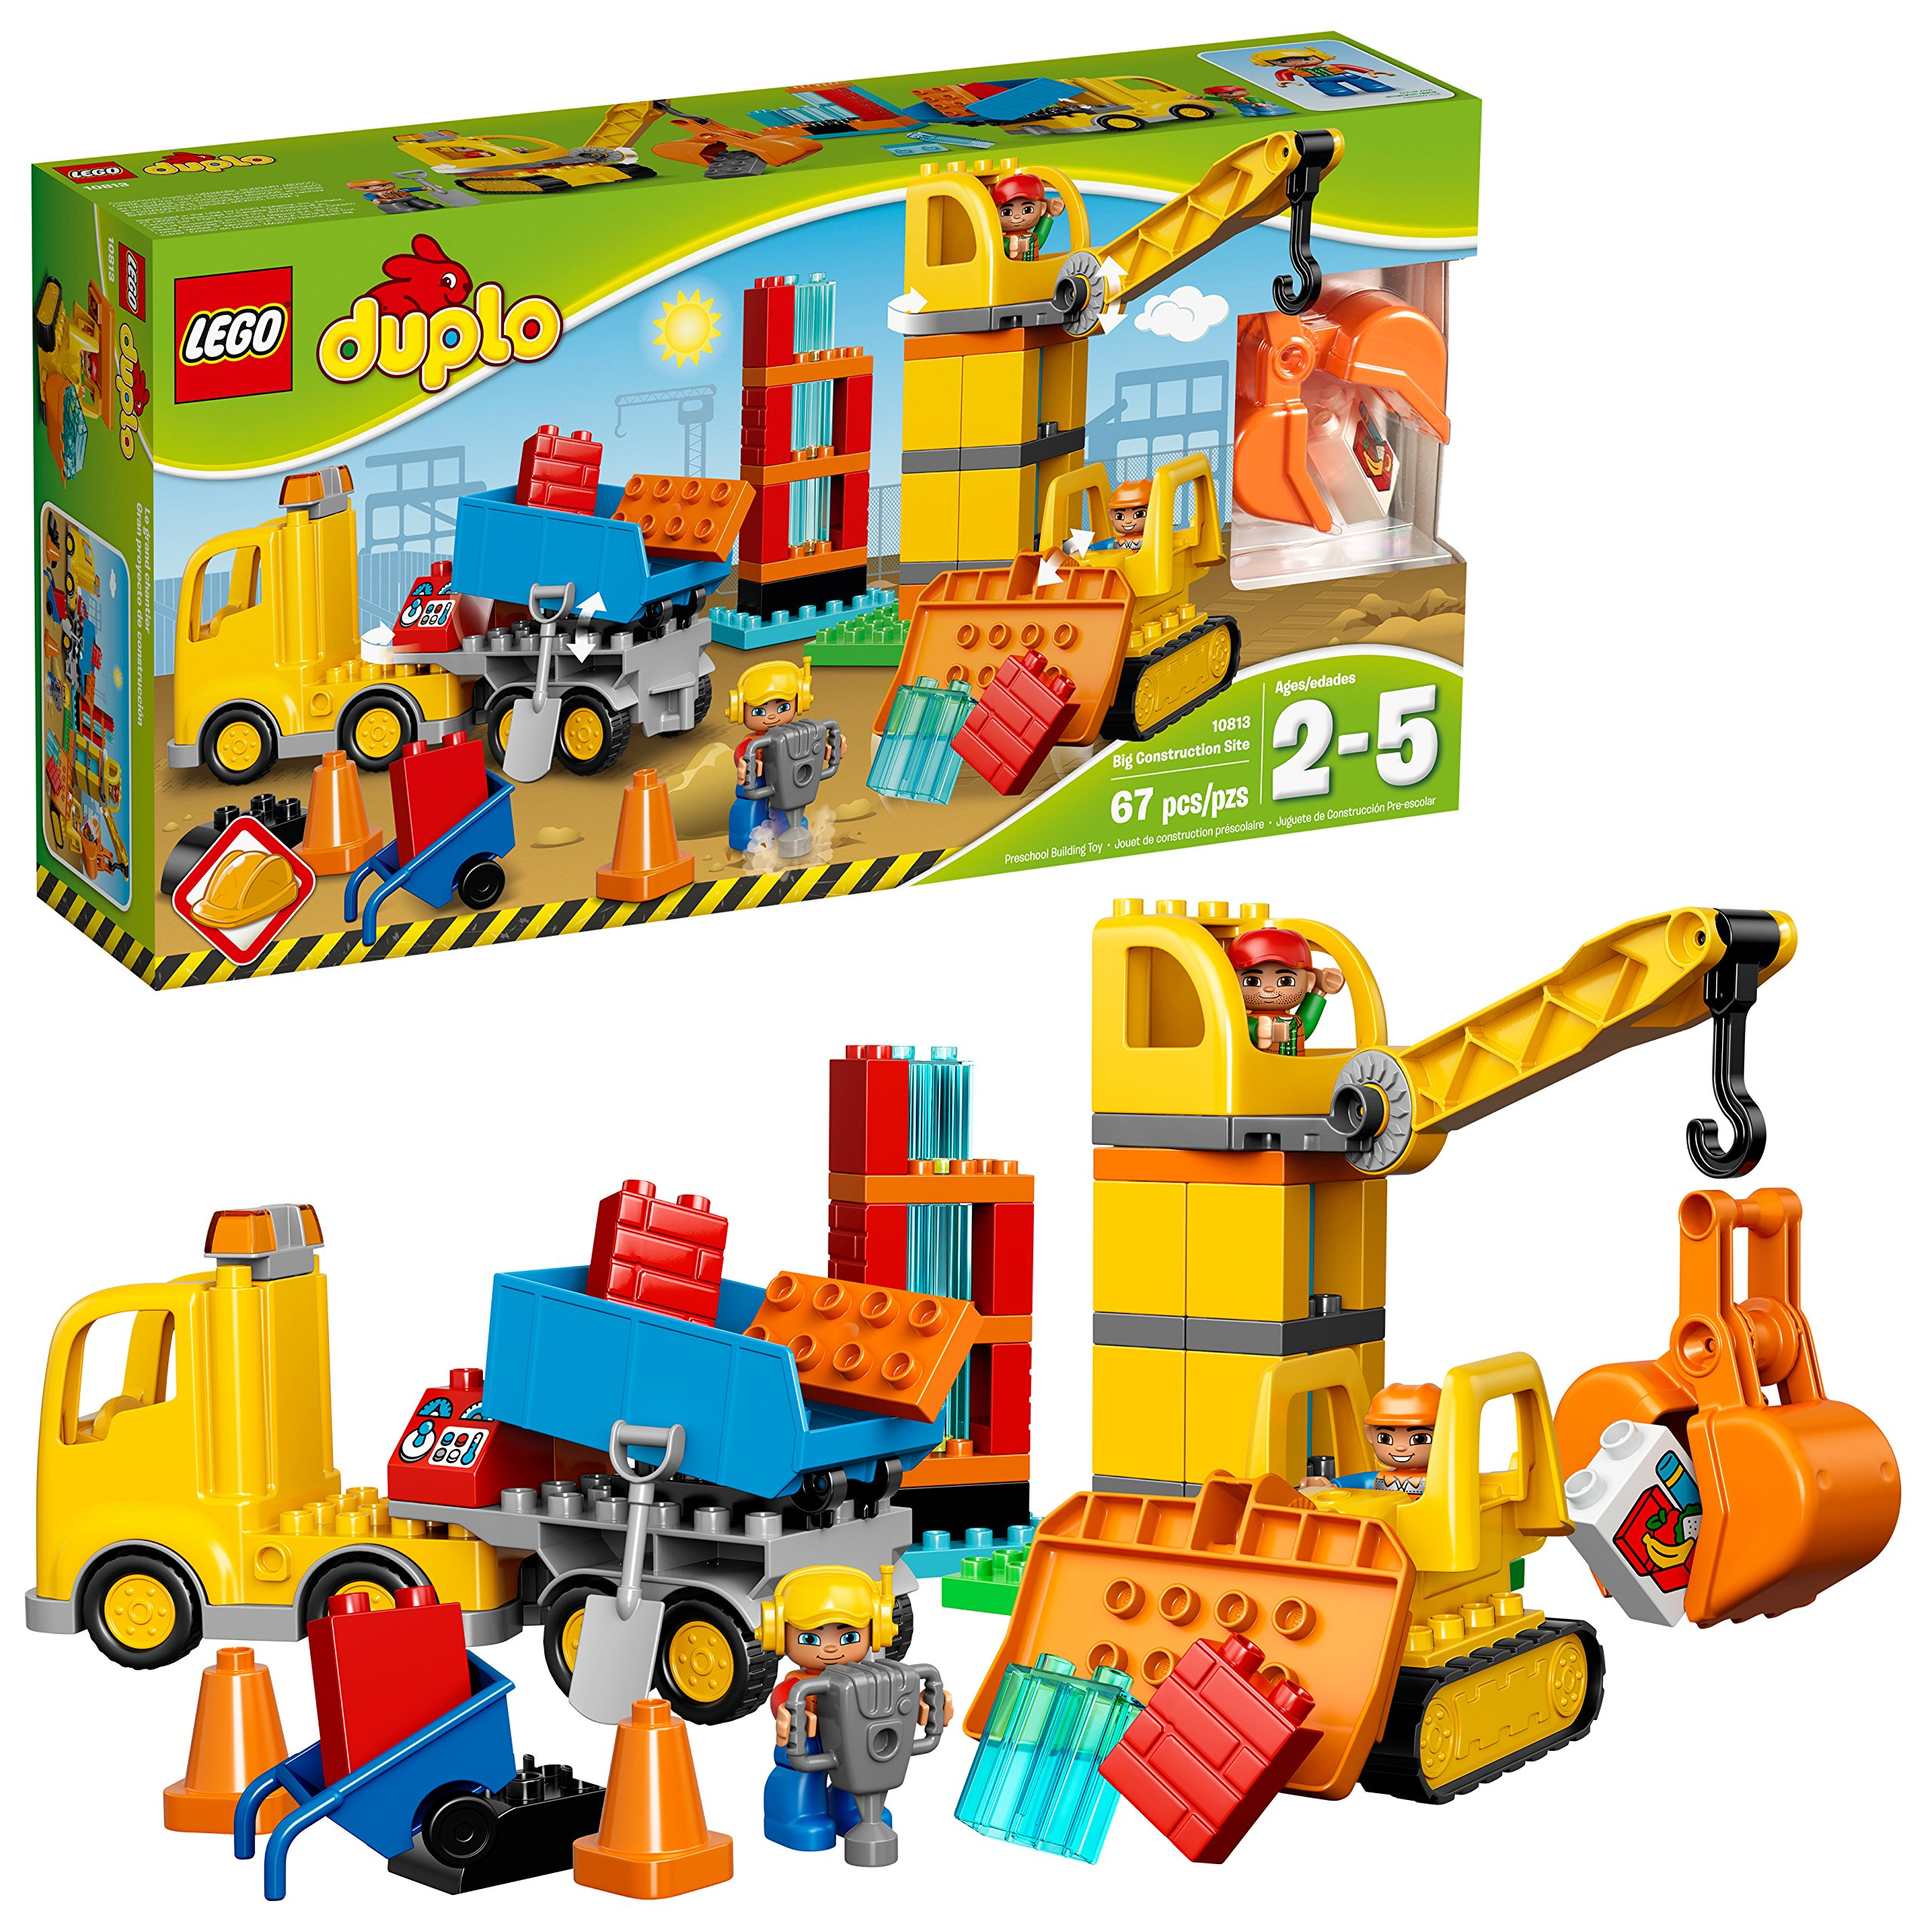 LEGO Duplo Big Construction Site 10813 Toddler Construction Toy Set with Toy Dump Truck, Crane and Bulldozer (67 Pieces) by LEGO